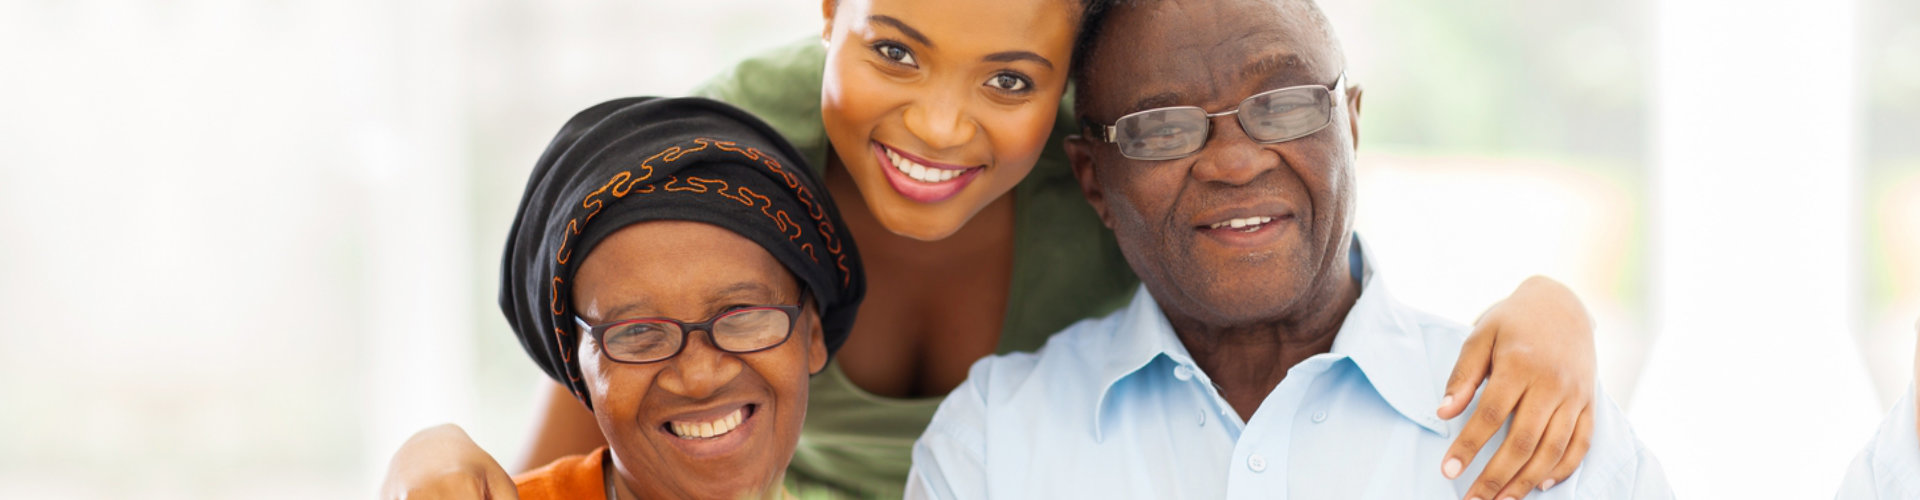 caregiver and an elderly couple smiling at the camera